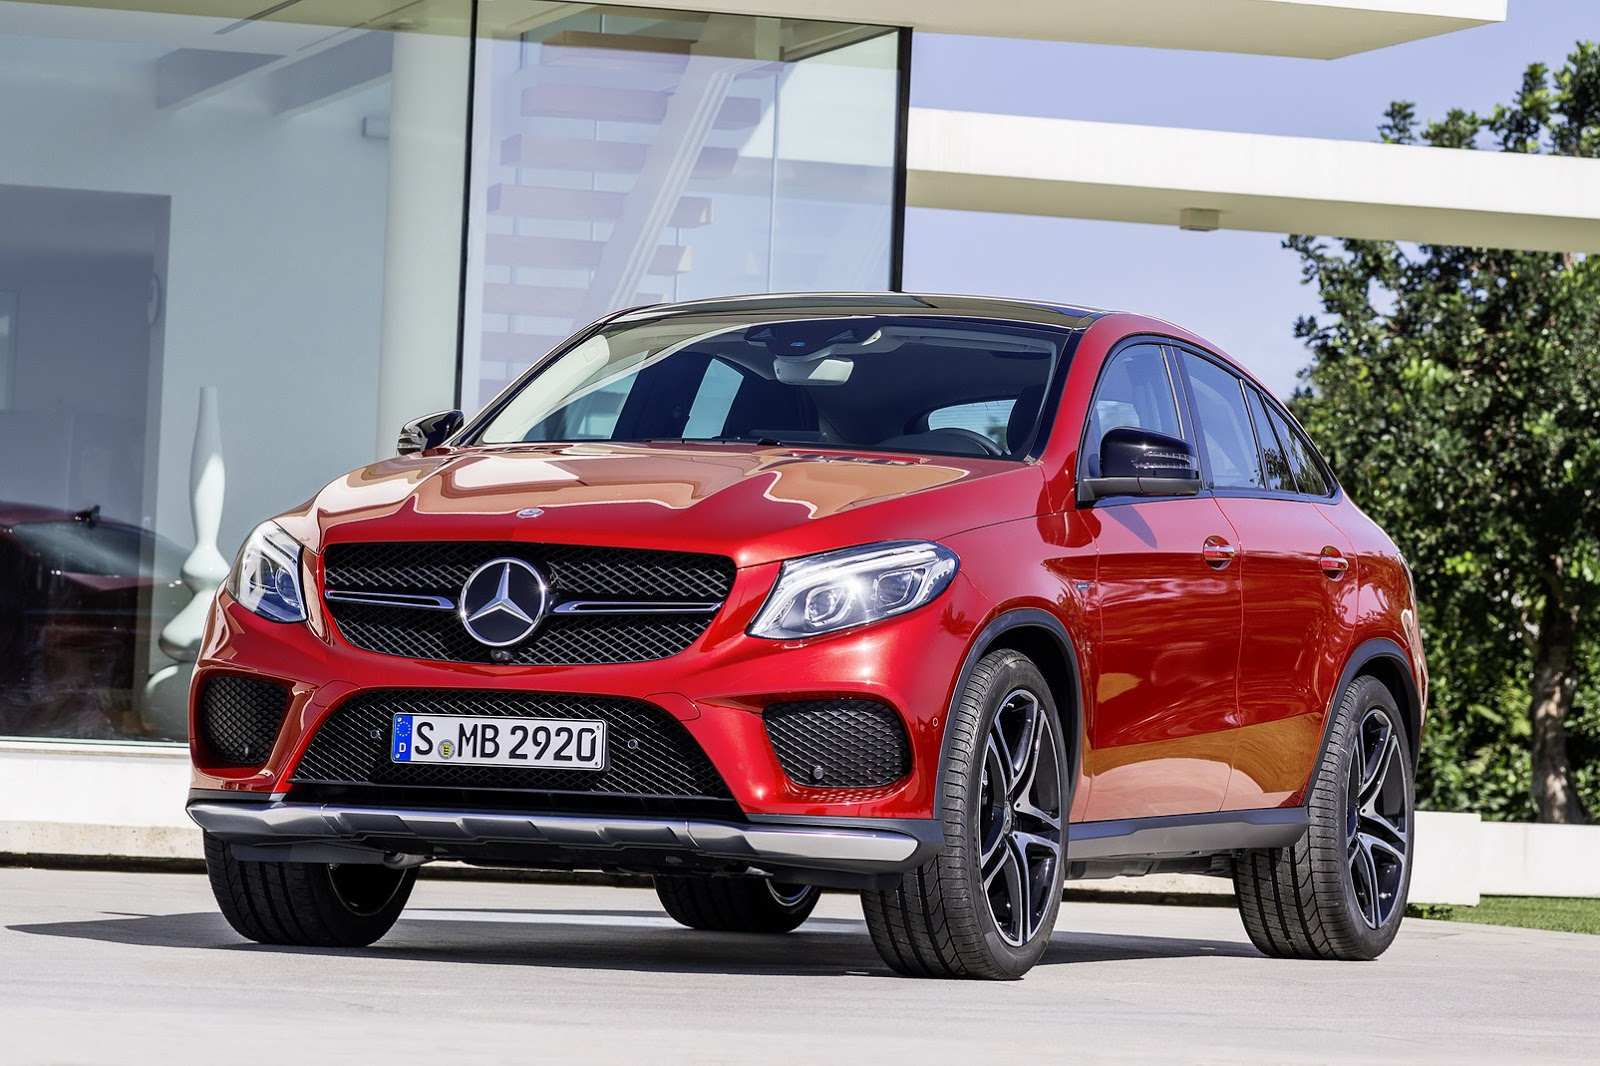 new gle coupe is mercedes 39 solution to its bmw x6 problem 43 pics carscoops. Black Bedroom Furniture Sets. Home Design Ideas